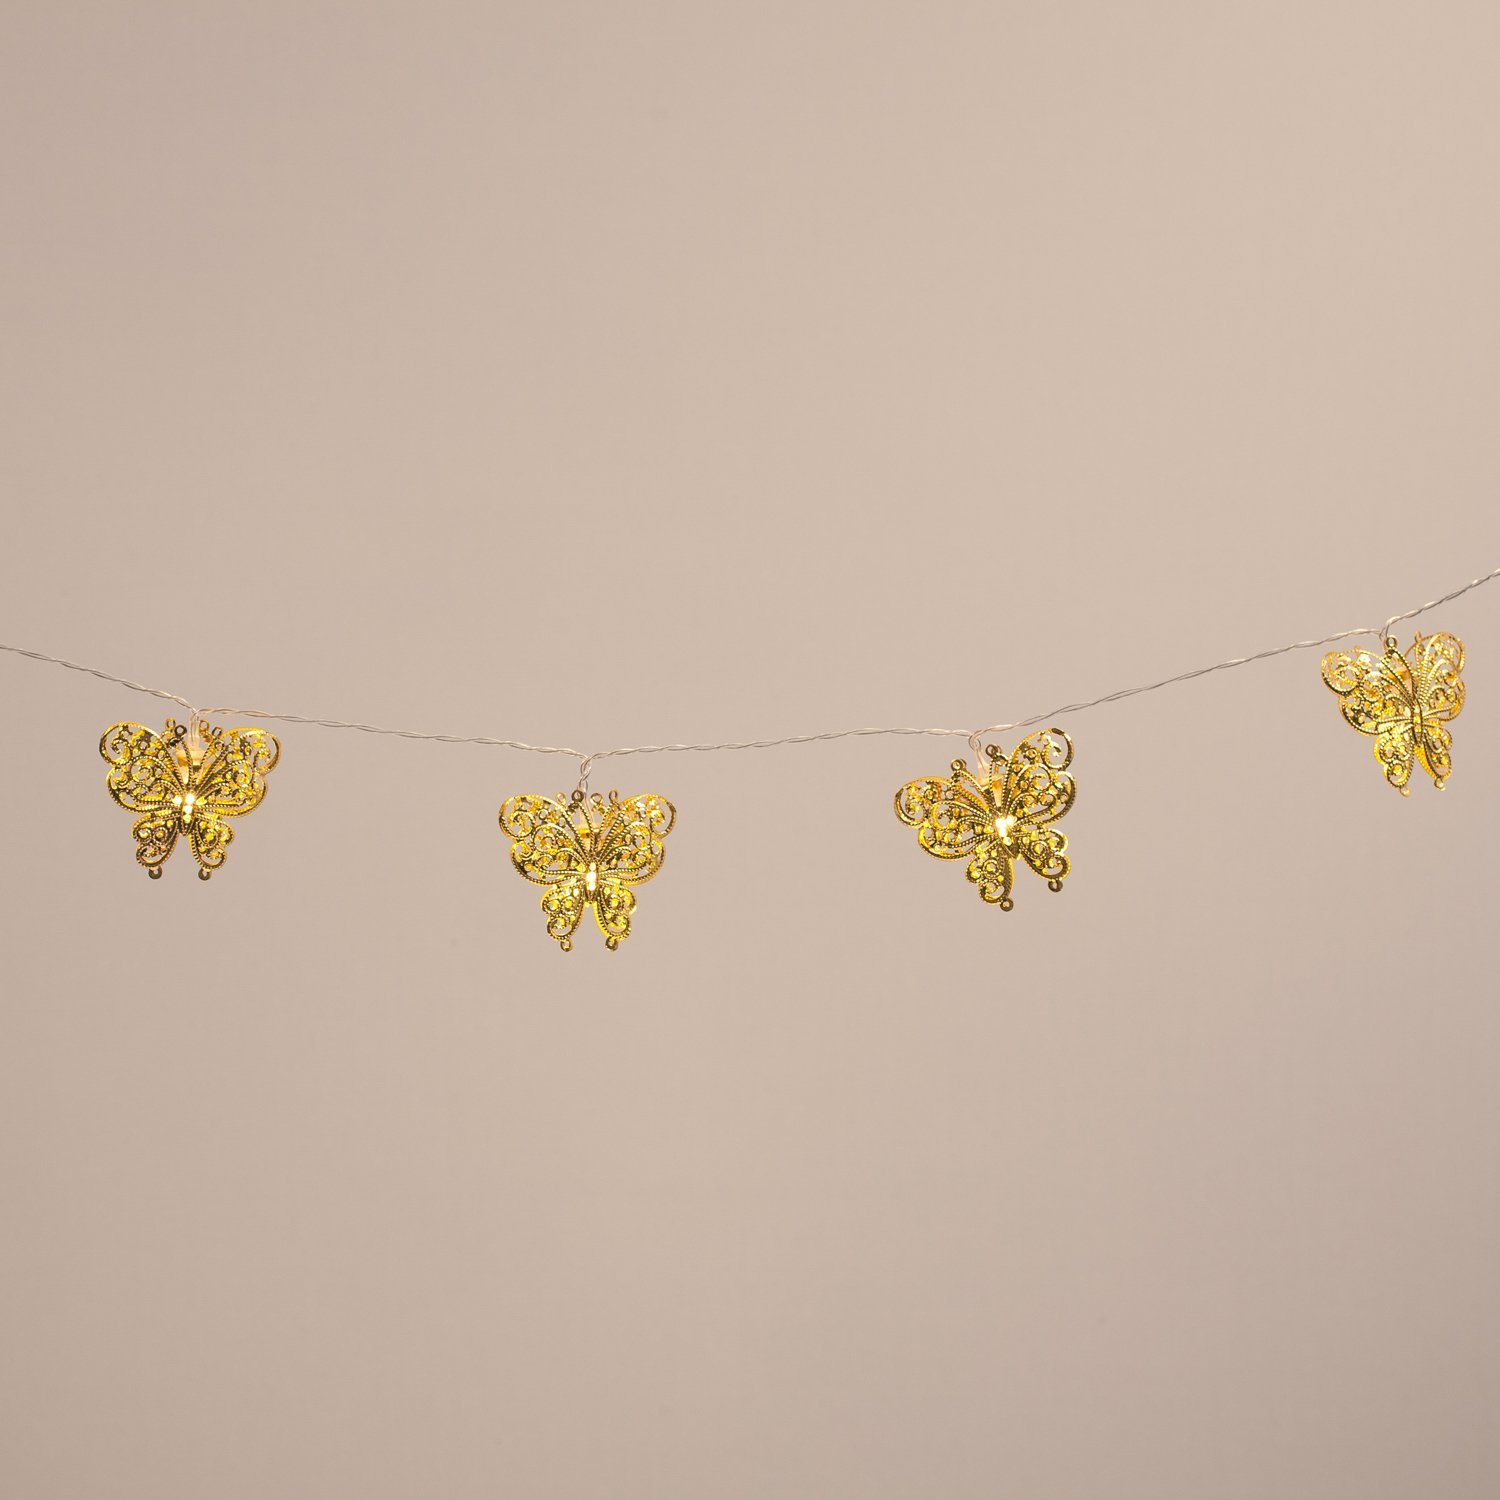 10 Led Gold Filigree Butterfly Battery Operated Fairy Lights